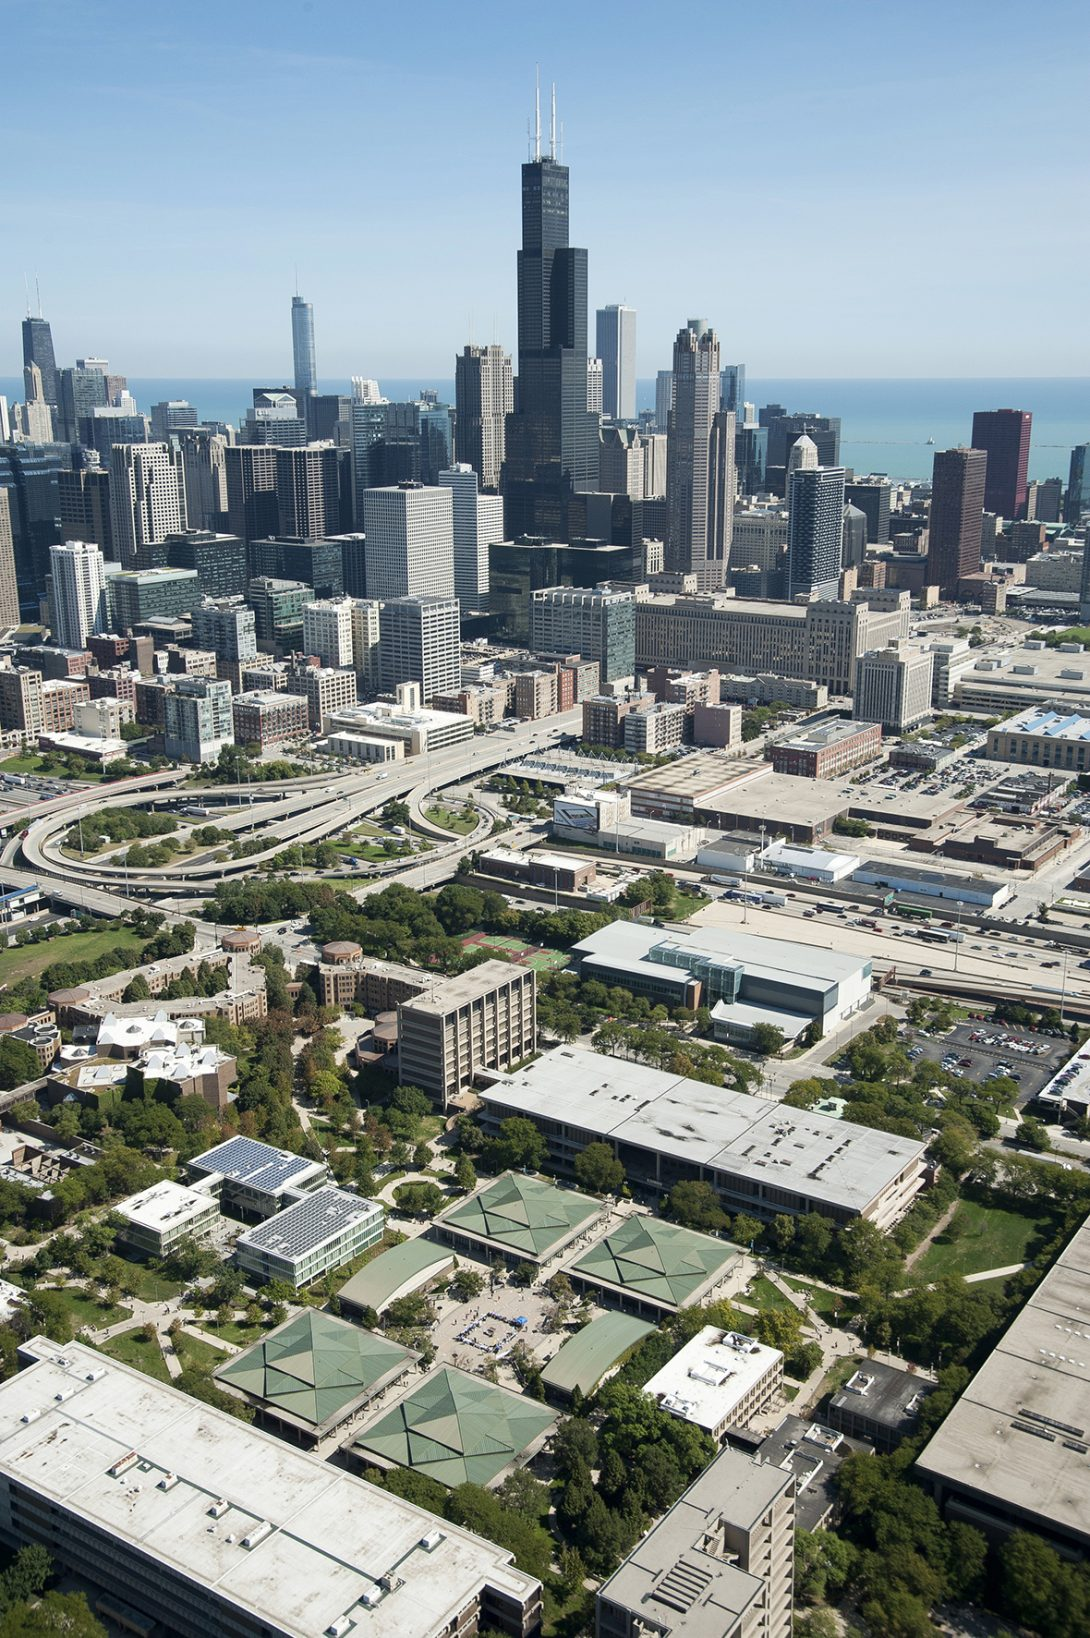 Aerial view of UIC and Chicago Skyline